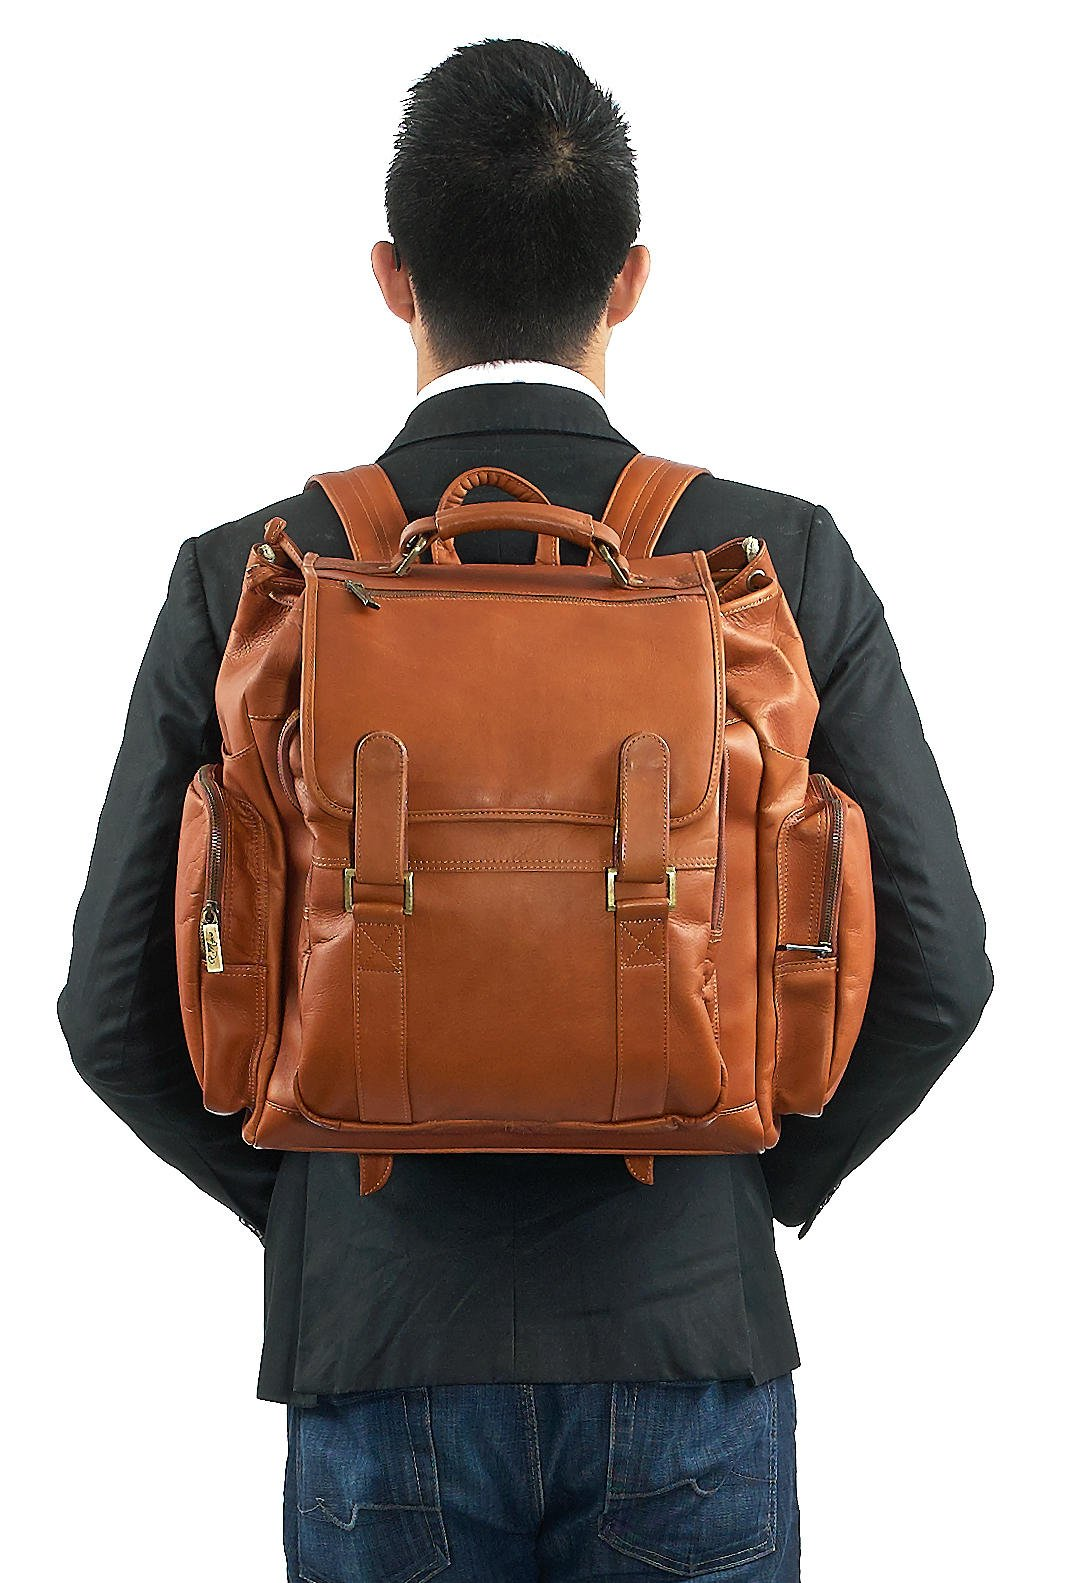 Over-Sized Backpack by Robert Myers (Image #2)